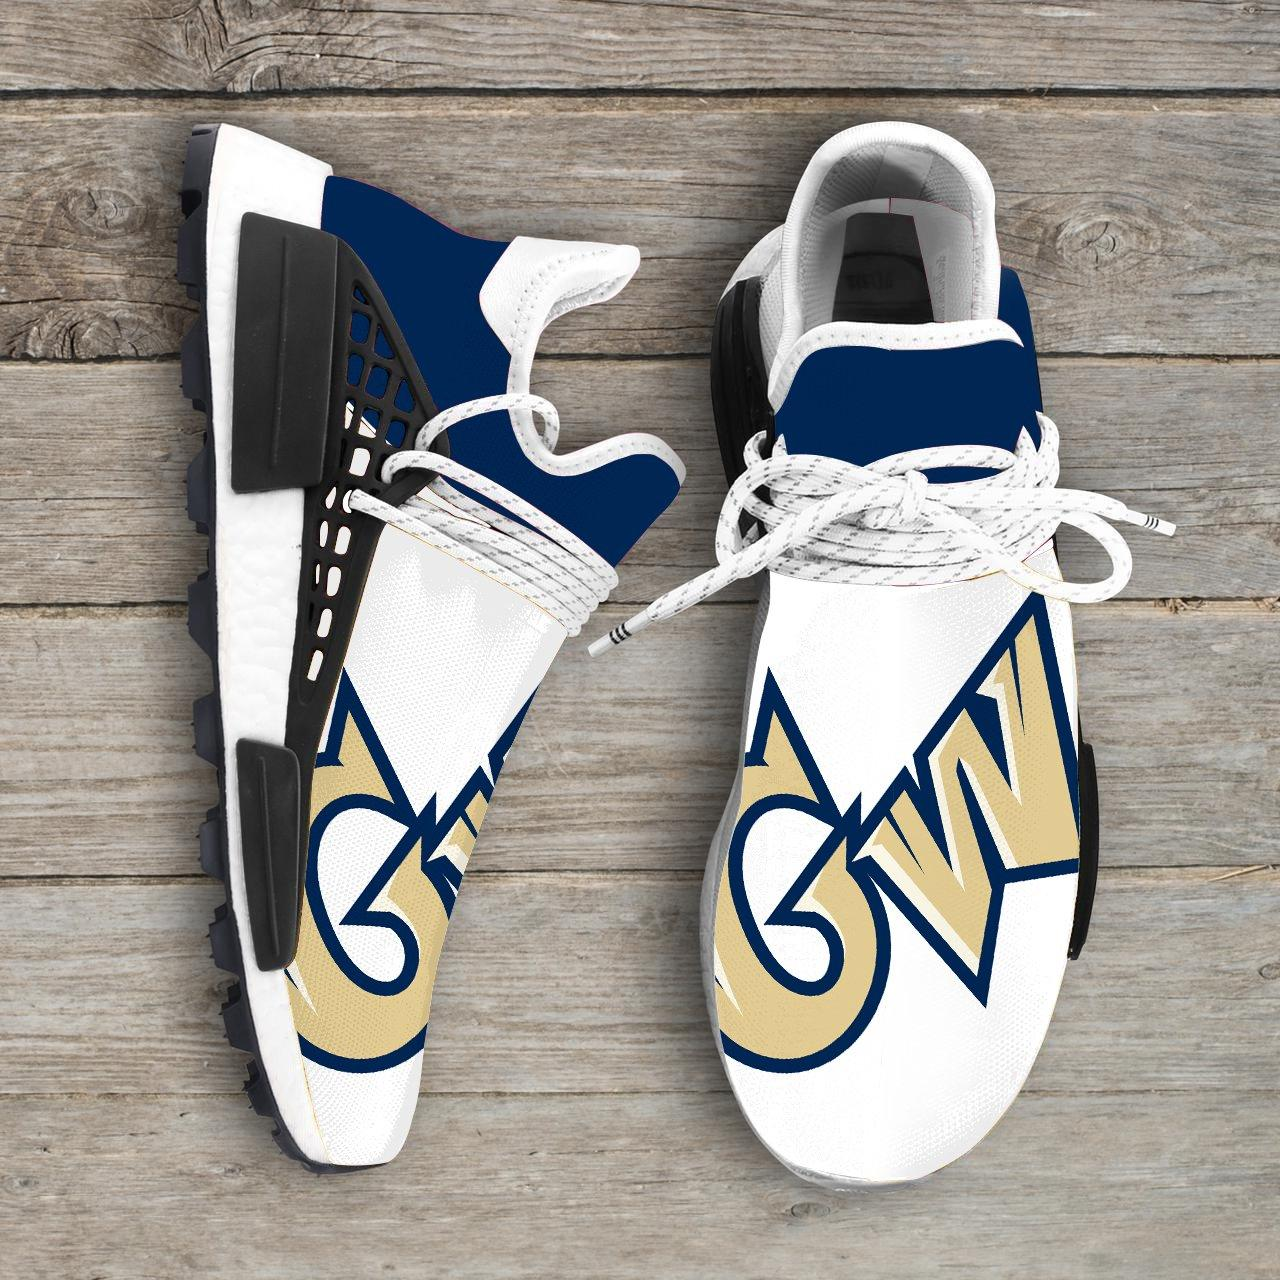 Gw Colonials Ncaa NMD Human Shoes